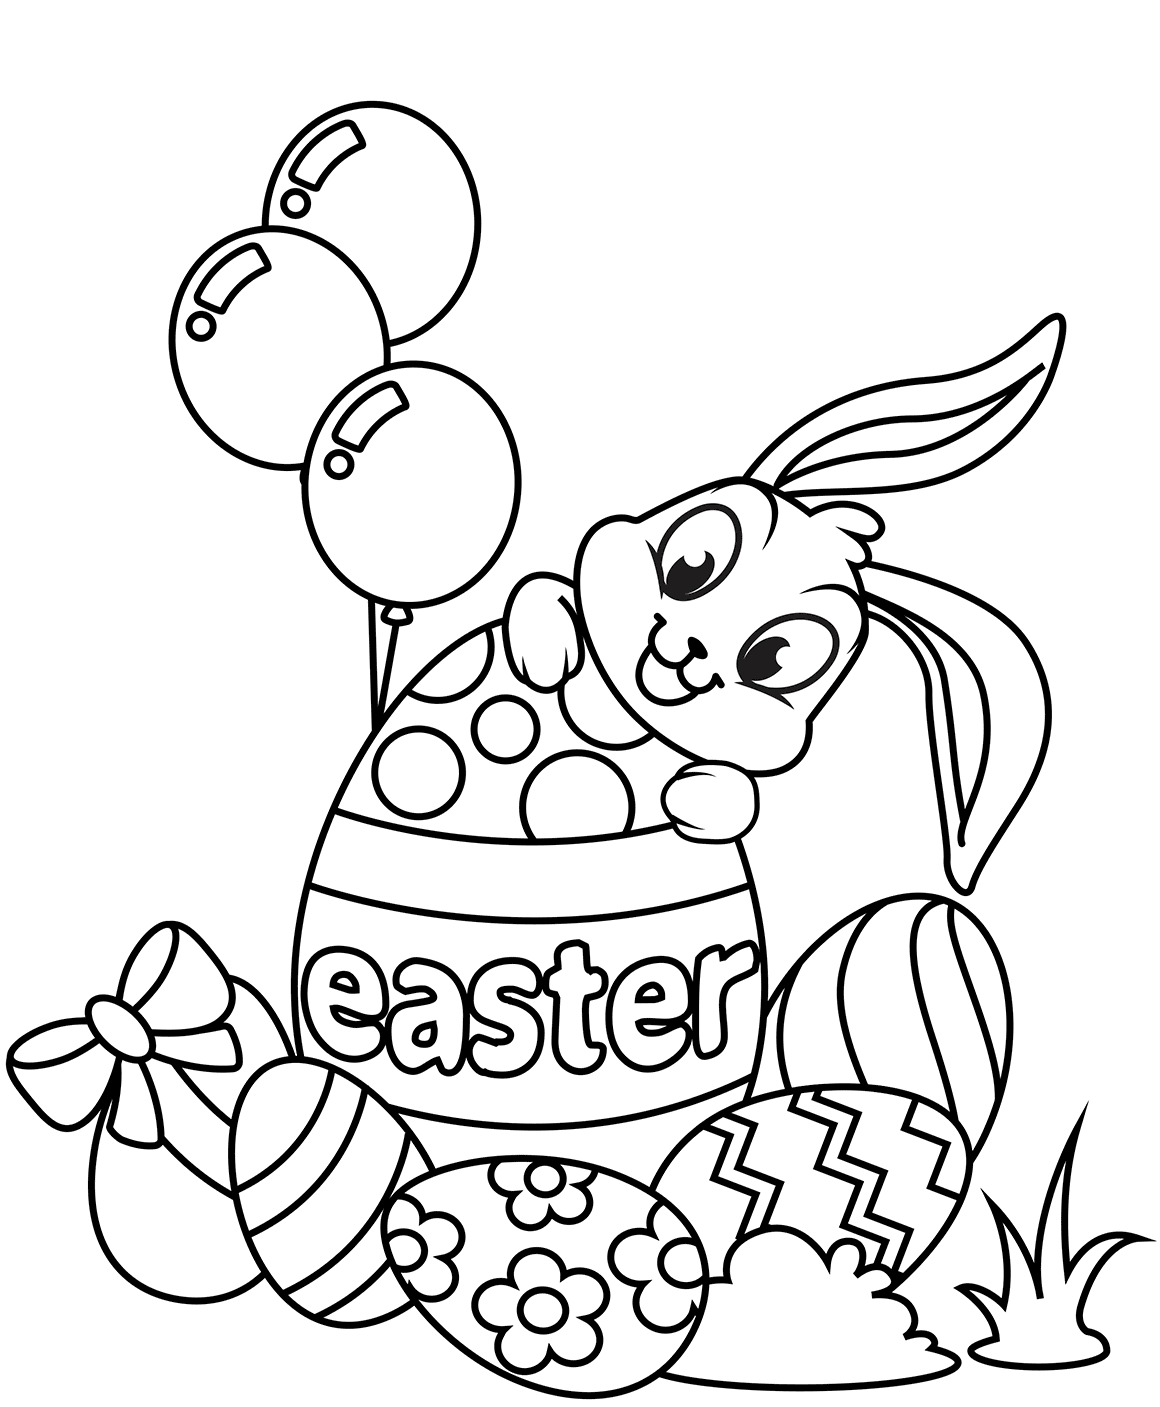 coloring pages easter easter coloring pages for adults best coloring pages for easter pages coloring